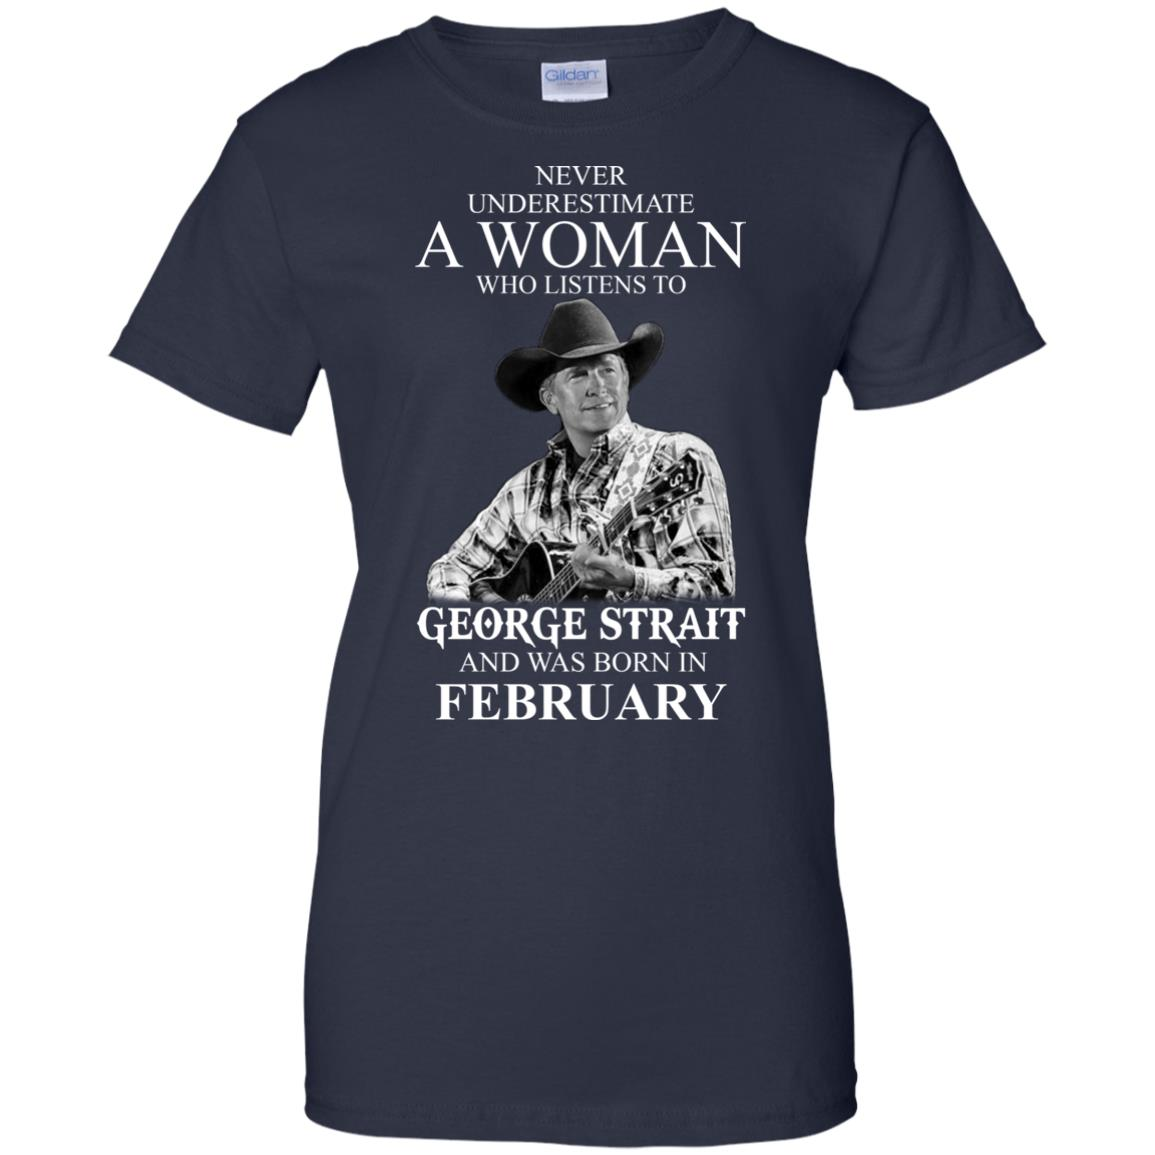 image 457 - Never Underestimate A Woman Who Listens To George Strait And Was Born In February shirt